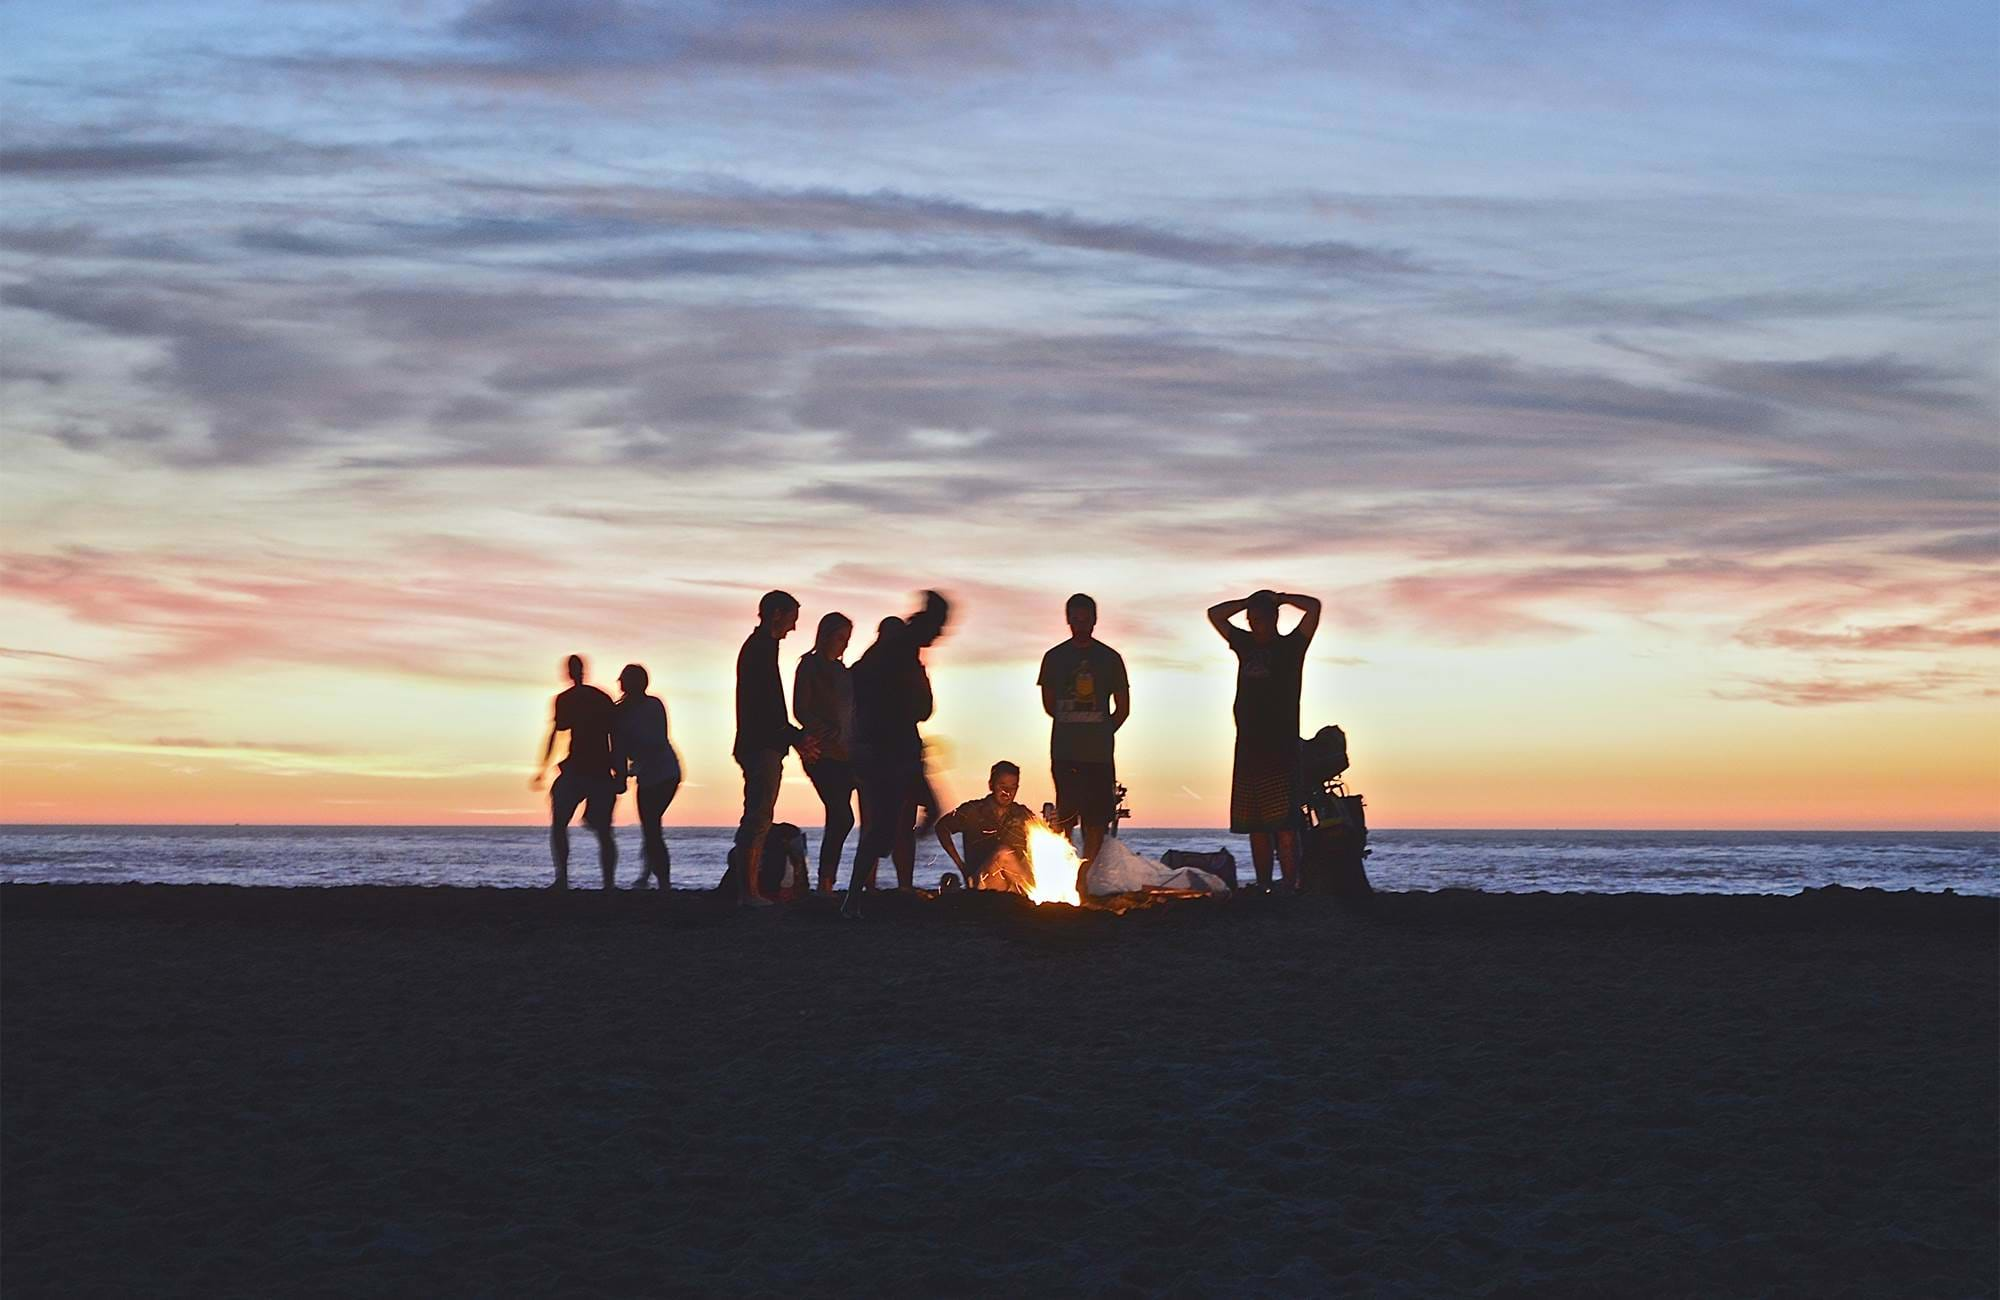 san-francisco-beach-sunset-bonfire-cover